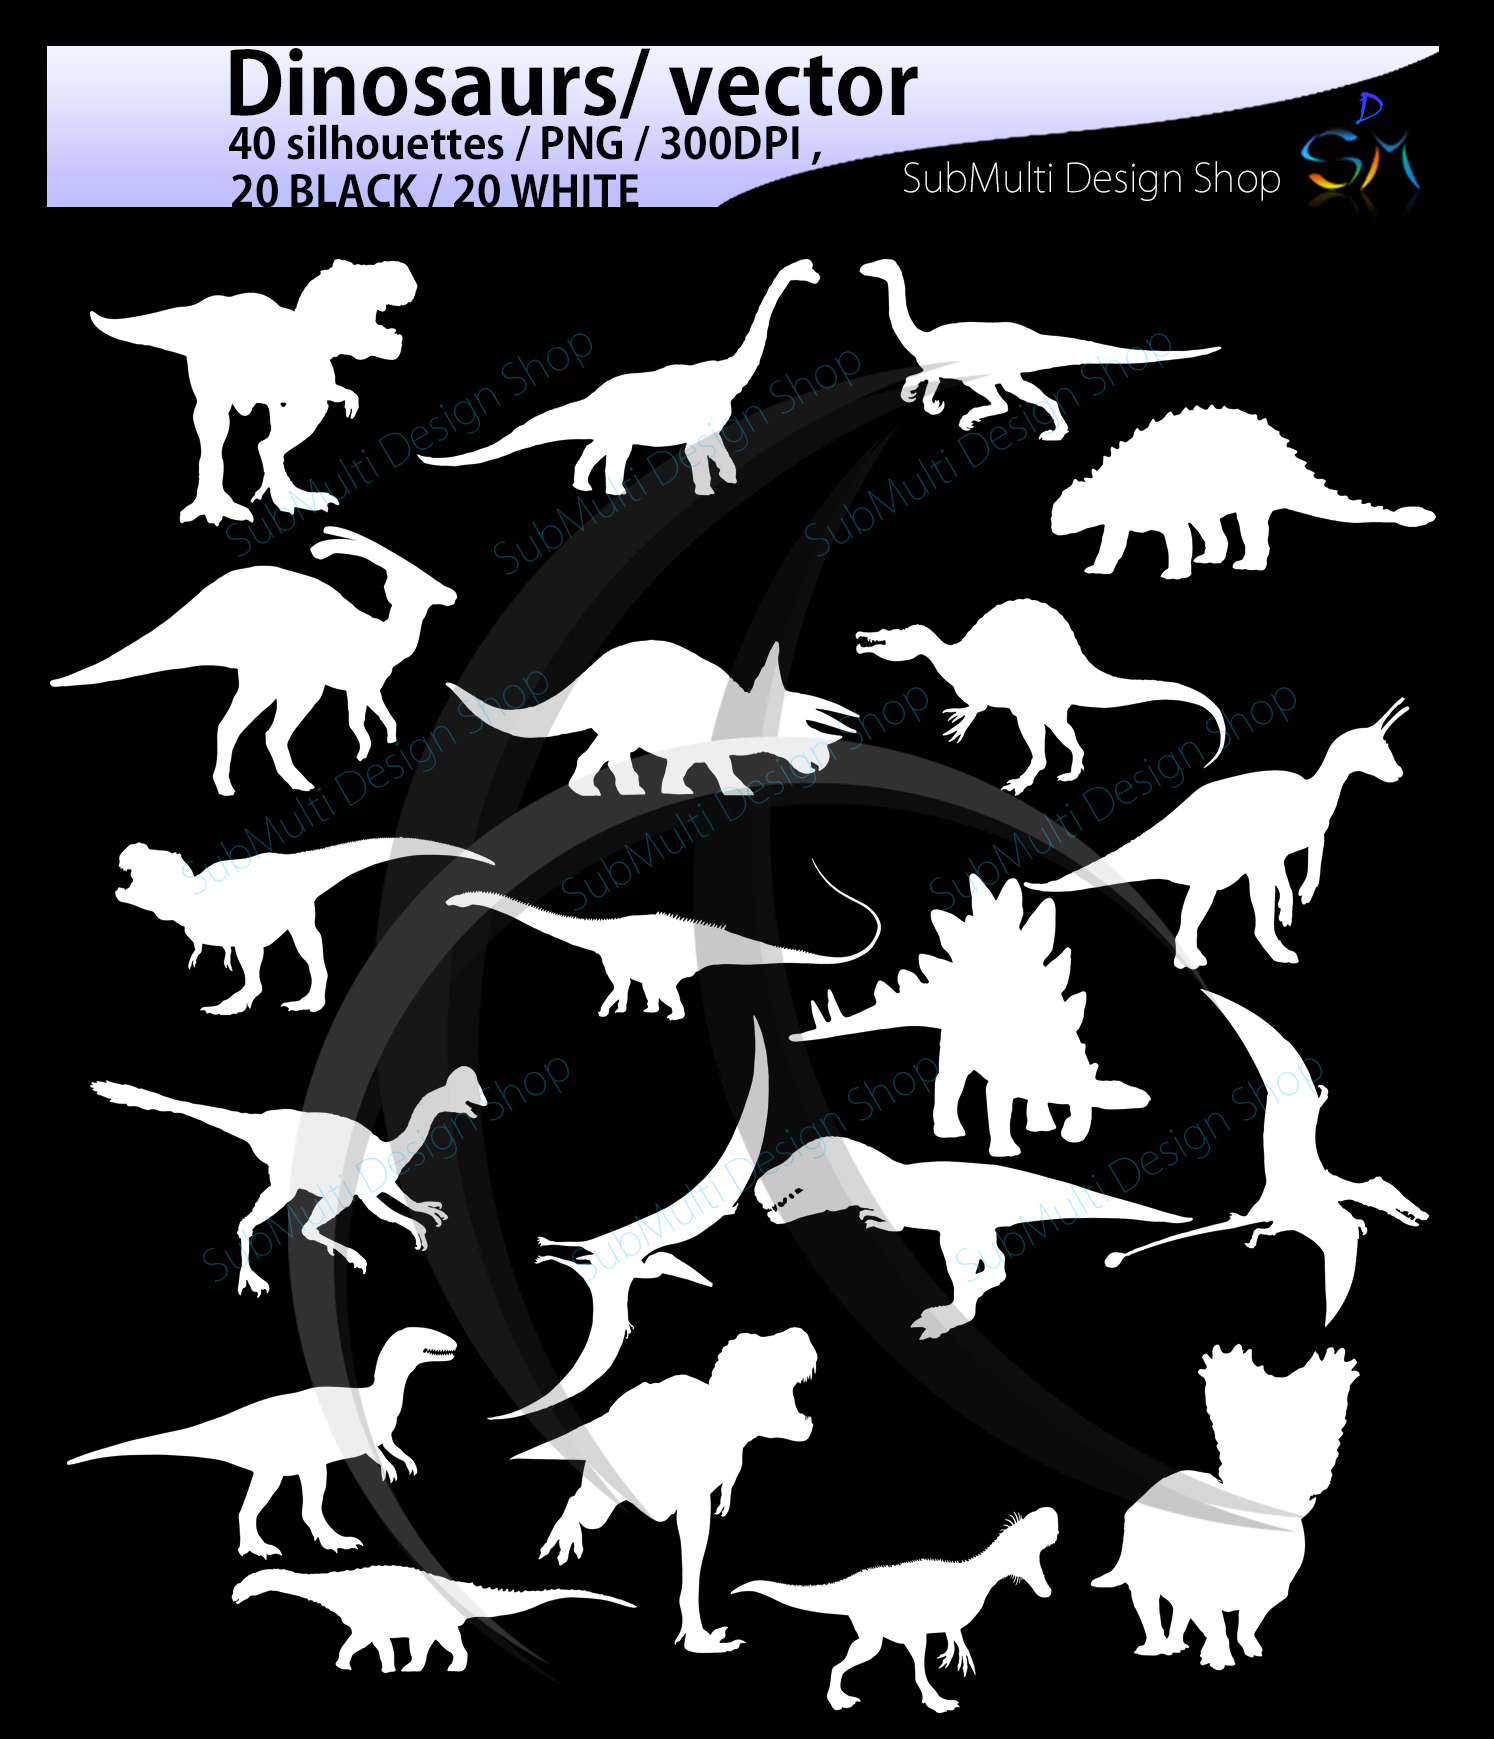 Dinosaurs silhouette svg / dinosaur Clipart, Iron on Transfer, Scrapbooking & Crafts / SVG template / EPS / PNG /animal silhouette / vector example image 4